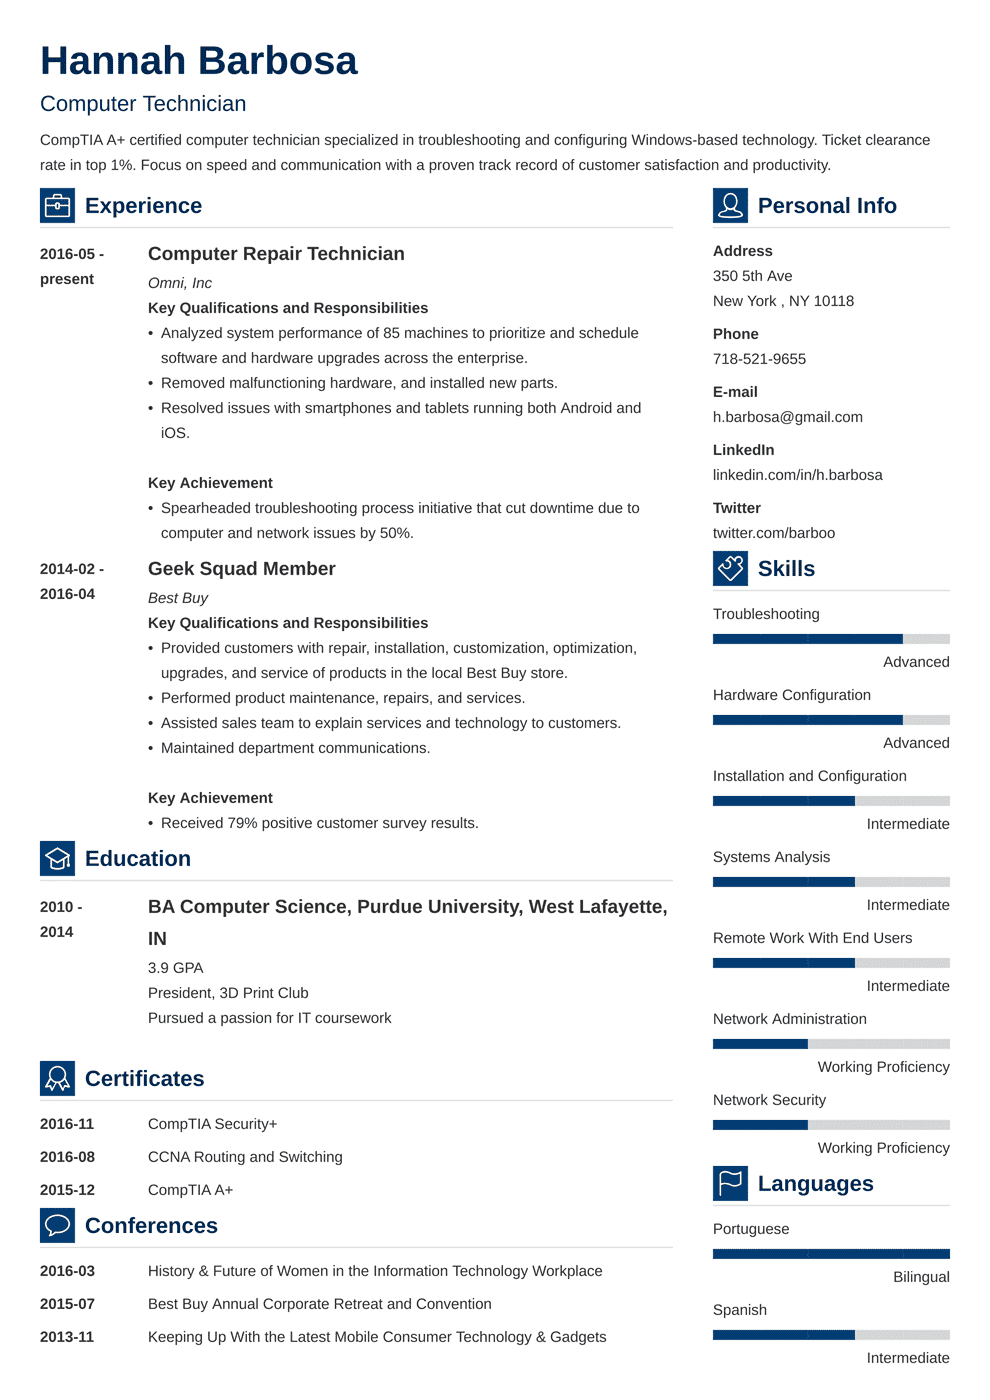 computer technician resume template vibes in 2020 Cv